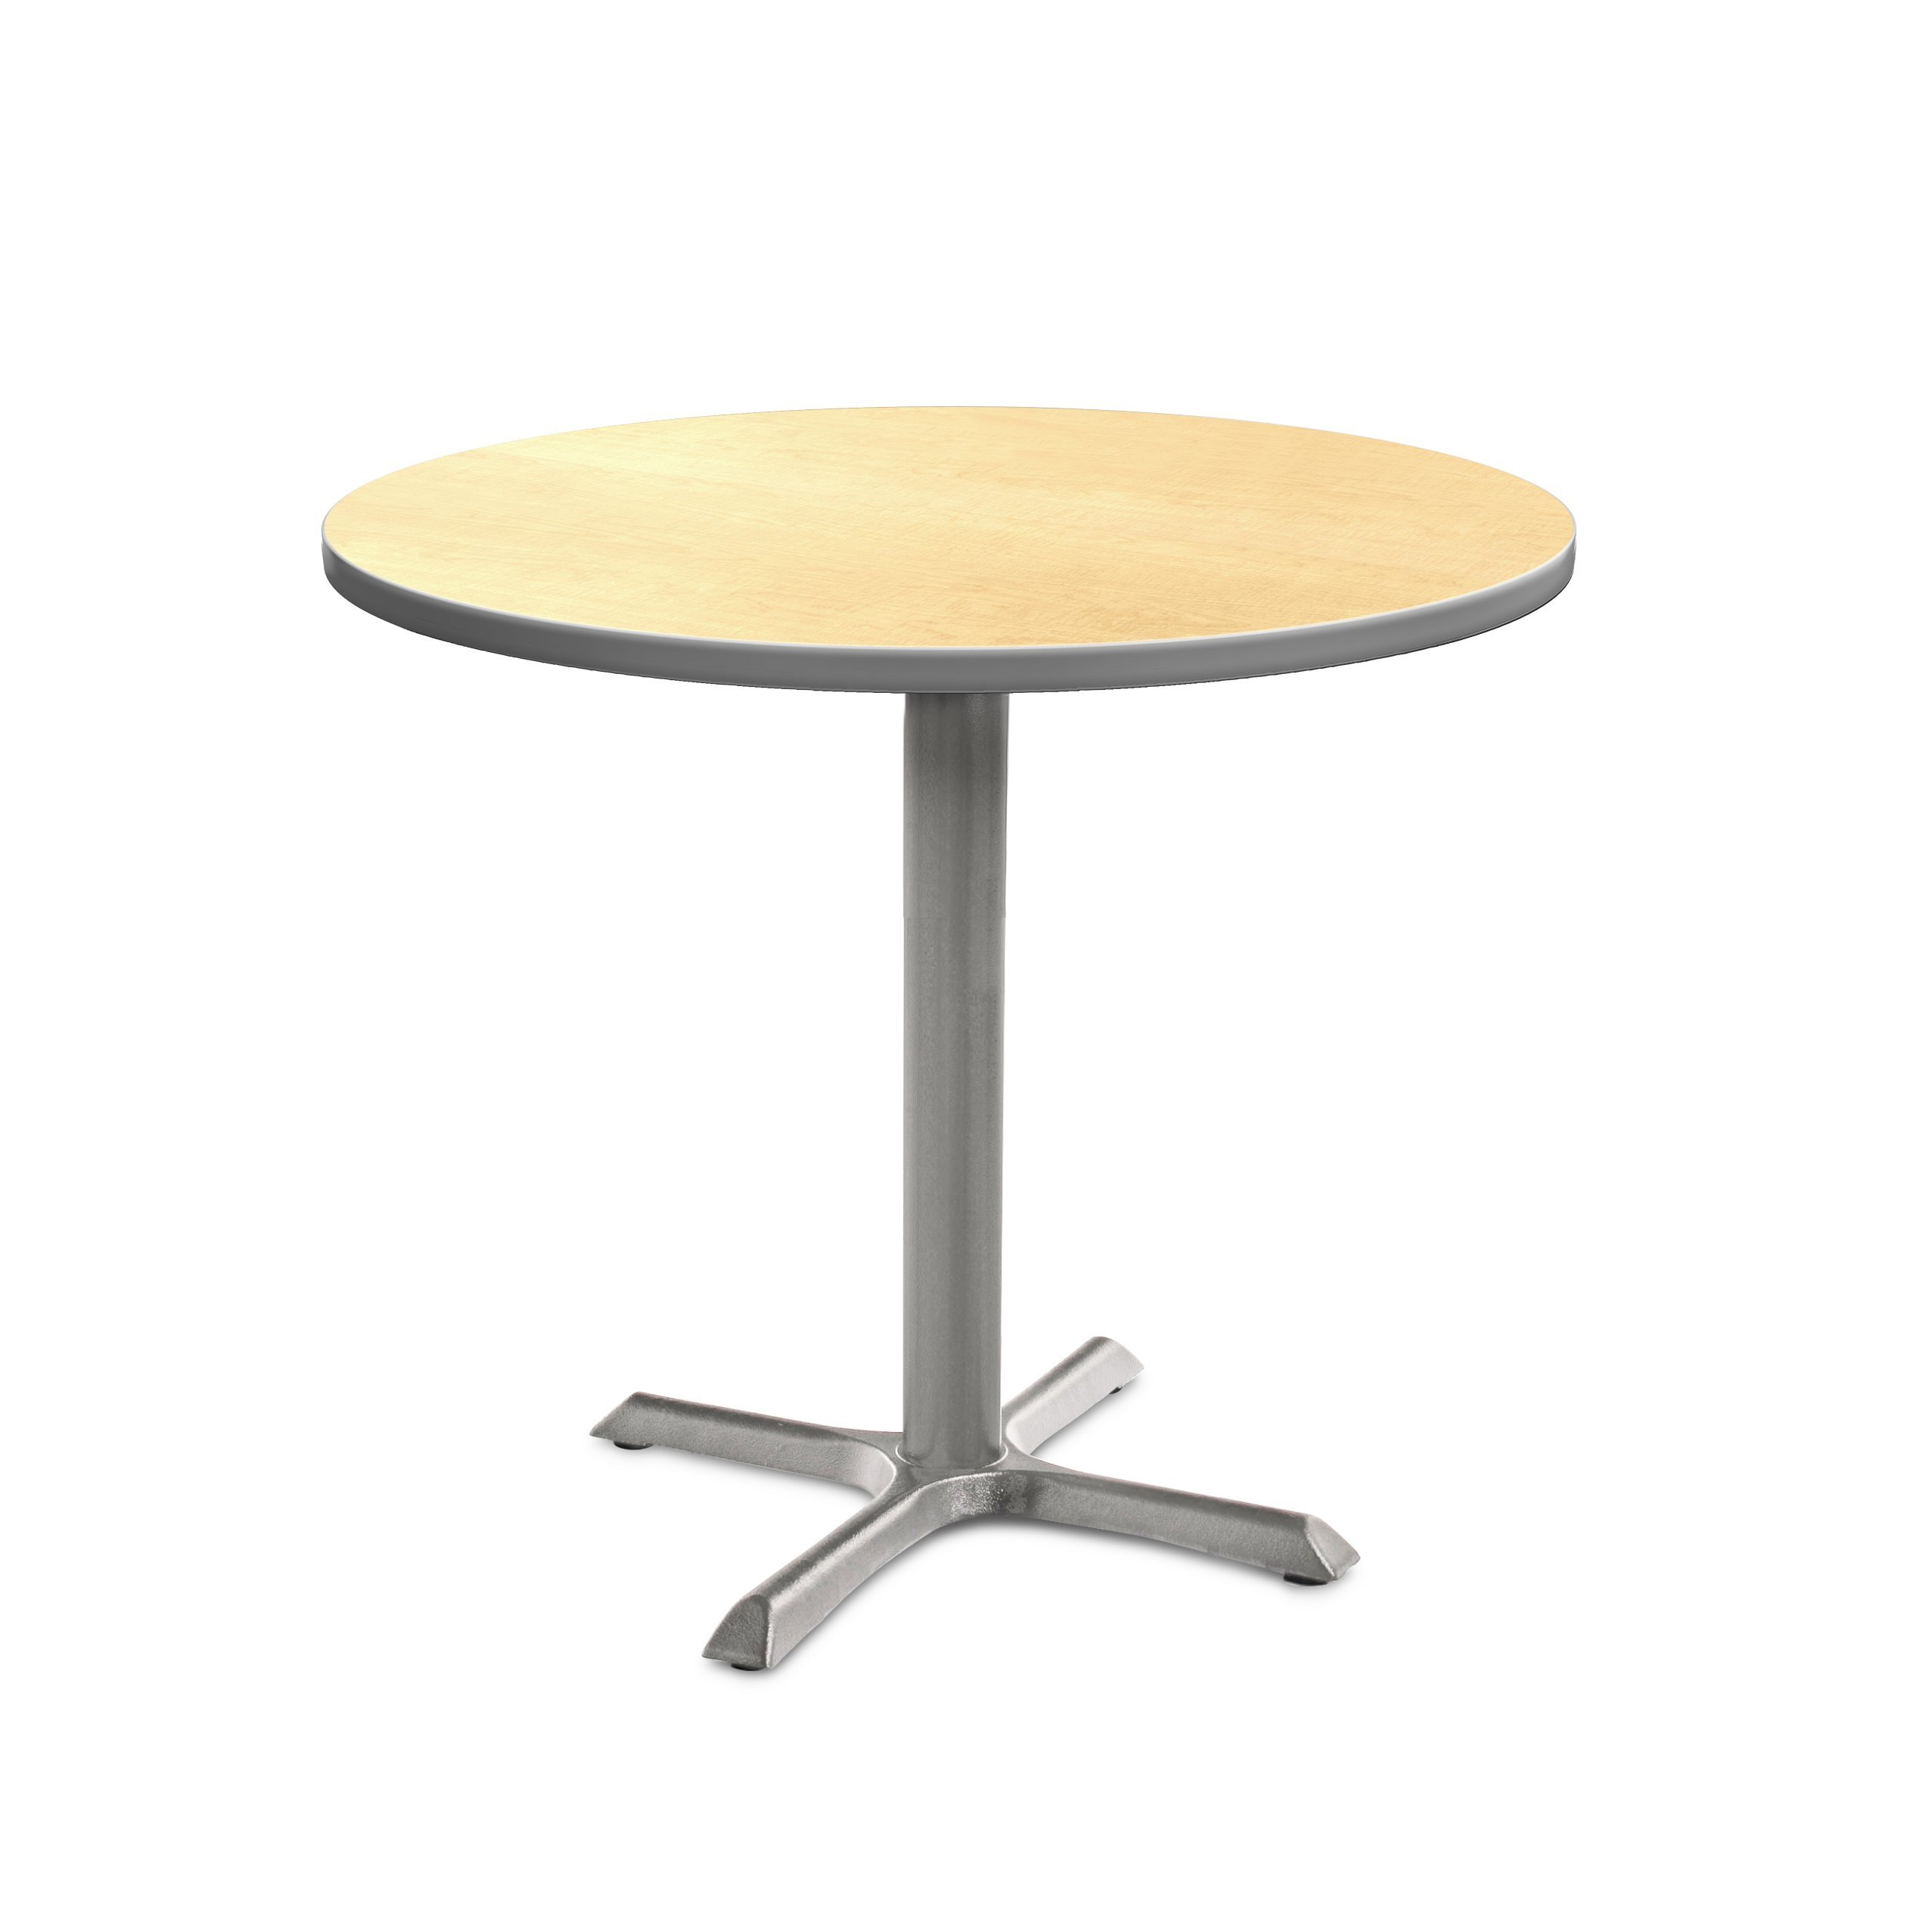 Marco Group MG2543-61-129GY 2500 Series Café Table, Fusion Maple Top with Gray Edge, Gray Pedestal Base, 29'' Height, 30'' Round